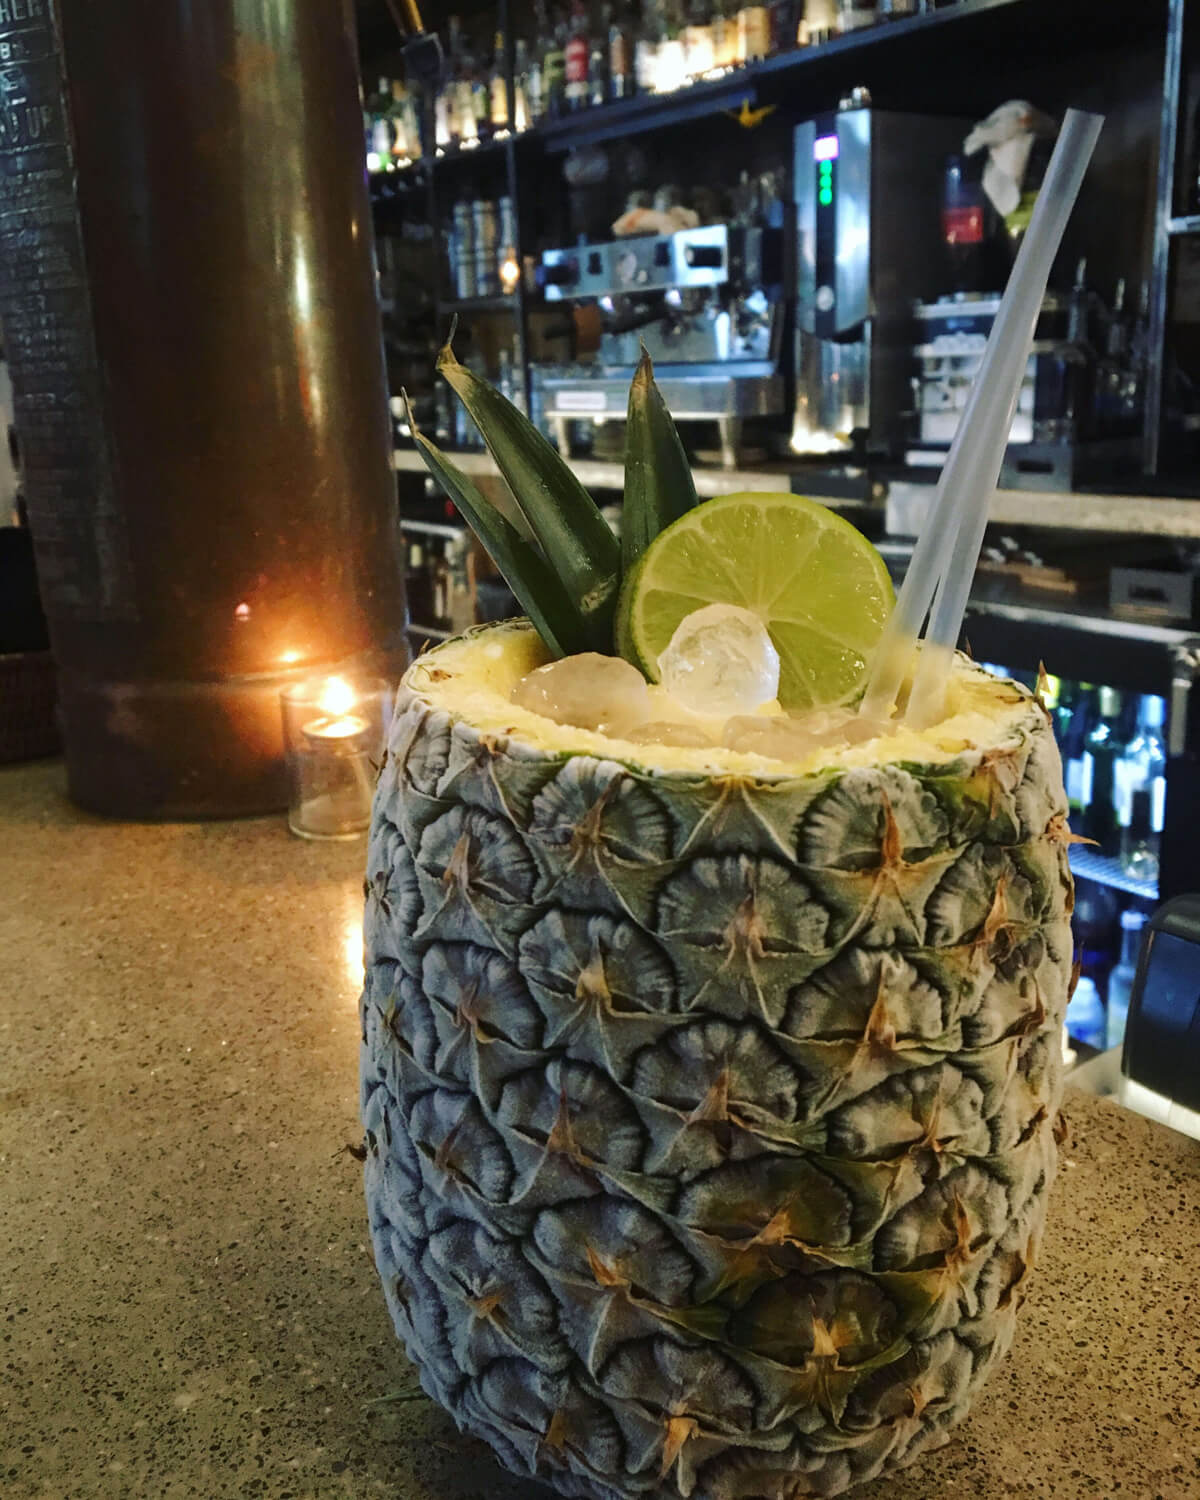 Peachy Keen Piña Colada at Royal DC - Piña Colada recipes for National Piña Colada Day and the summer